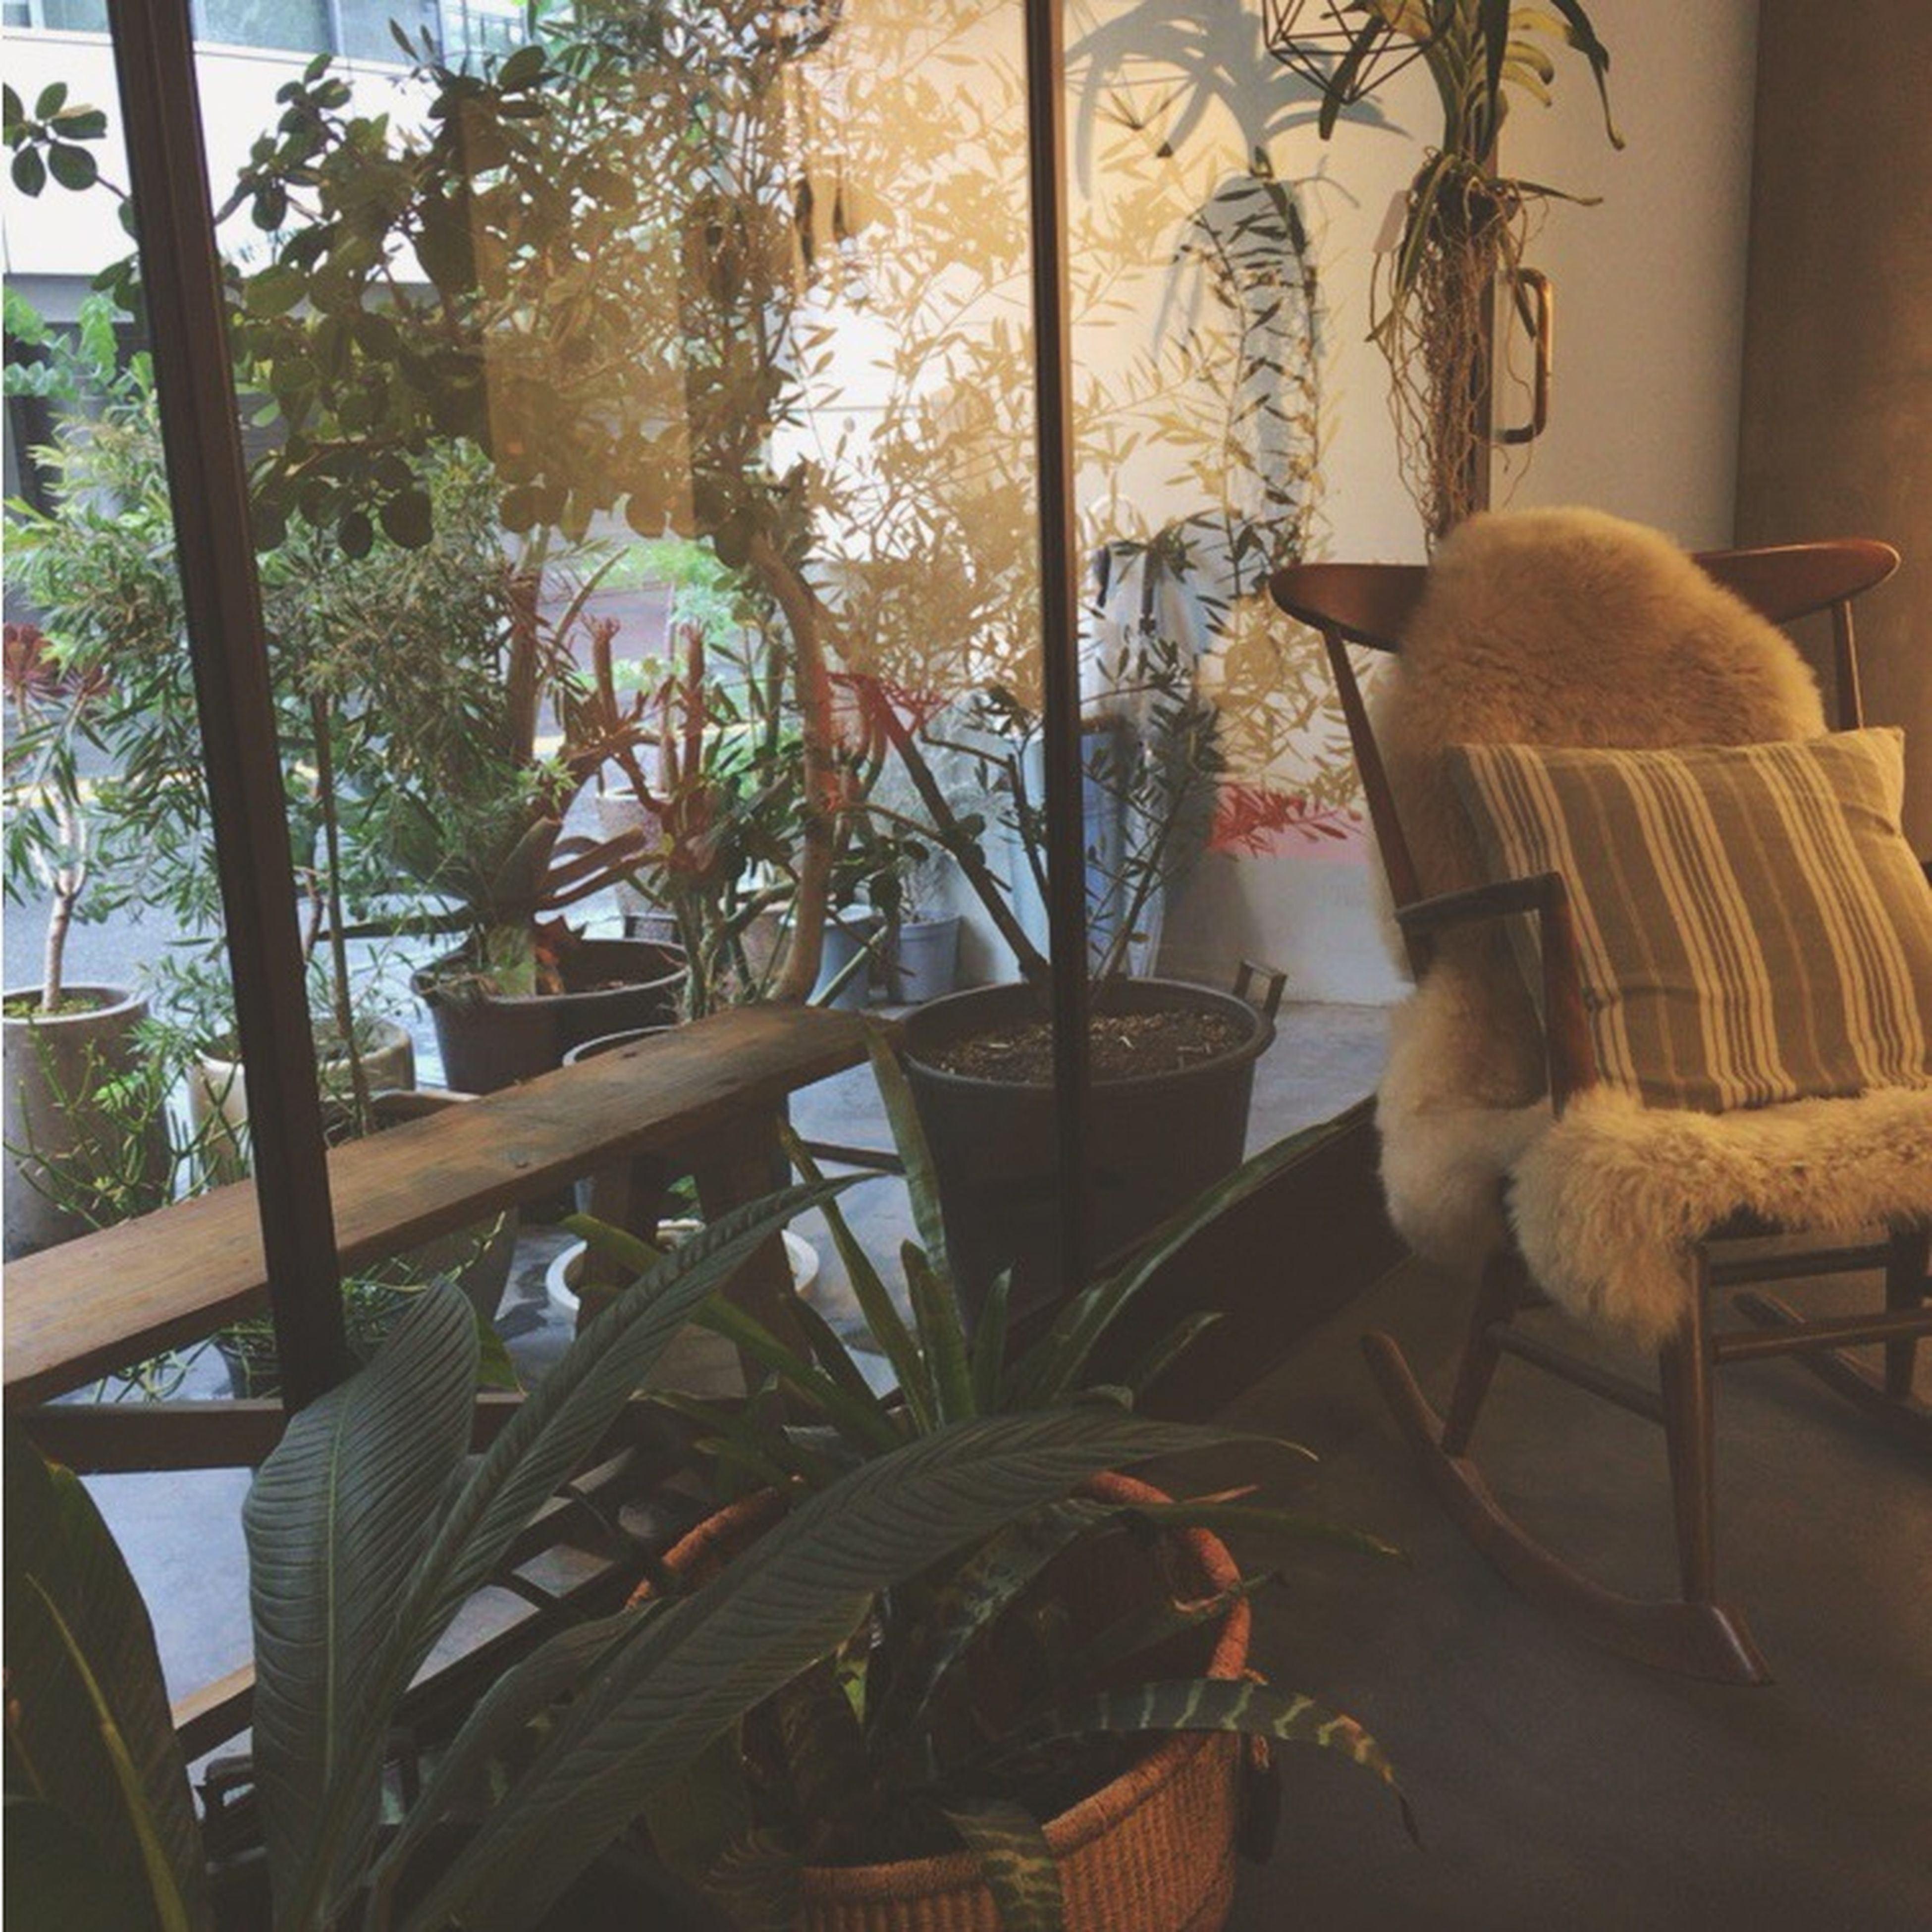 indoors, chair, table, window, home interior, empty, plant, growth, day, domestic life, arrangement